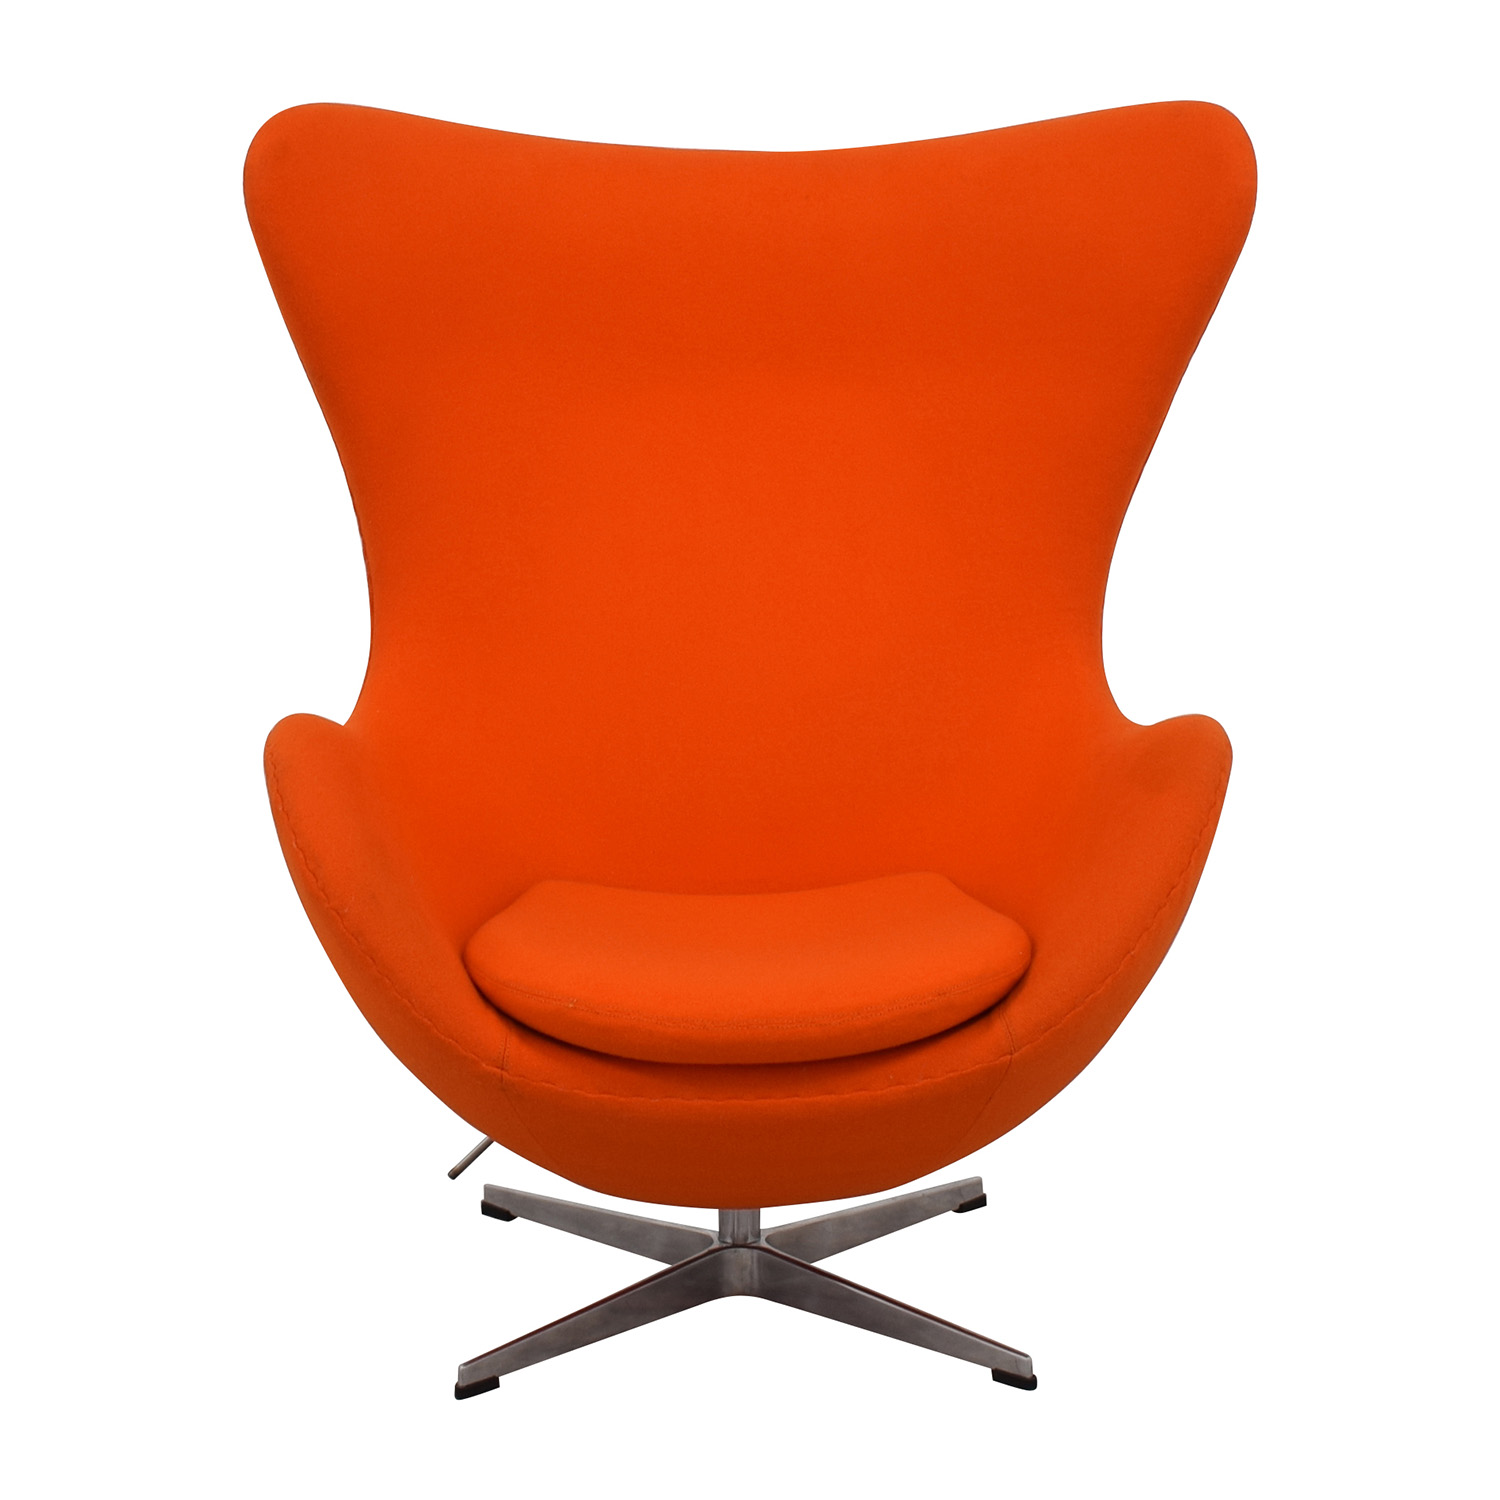 Inmod INMod Jacobsen Orange Egg Chair coupon